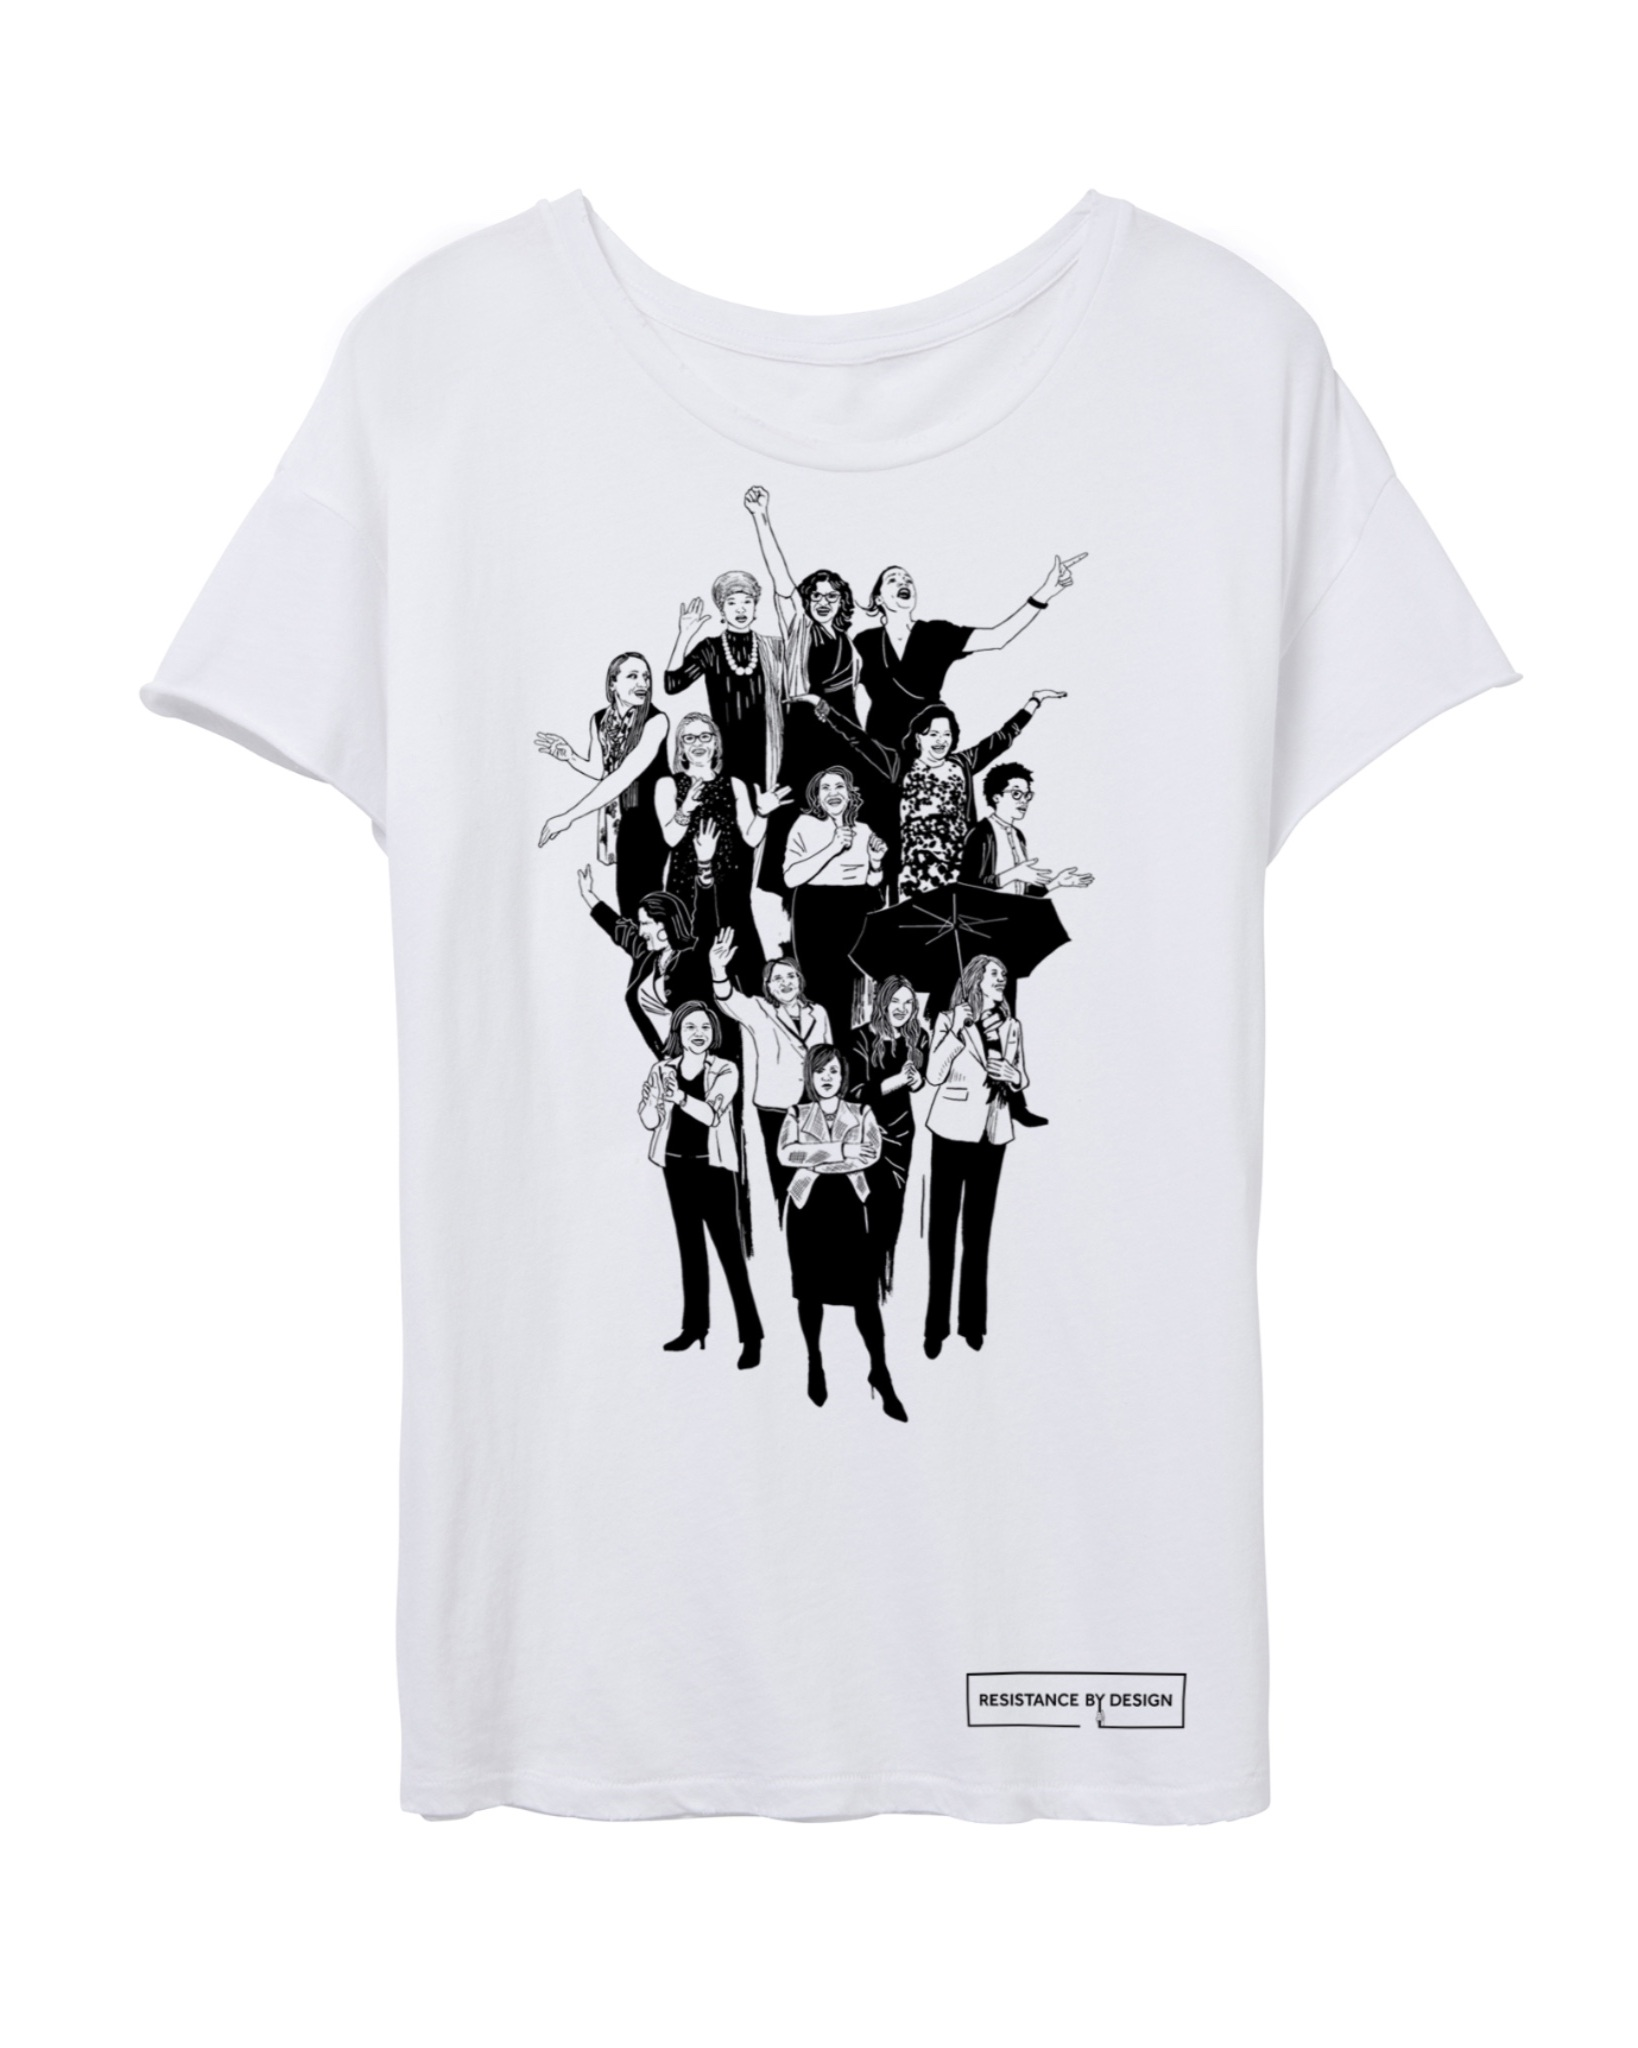 The POWERHOUSE tee celebrates the long awaited firsts of 116th Congress- first Native Americans congresswomen, first muslim American congresswomen, and more.